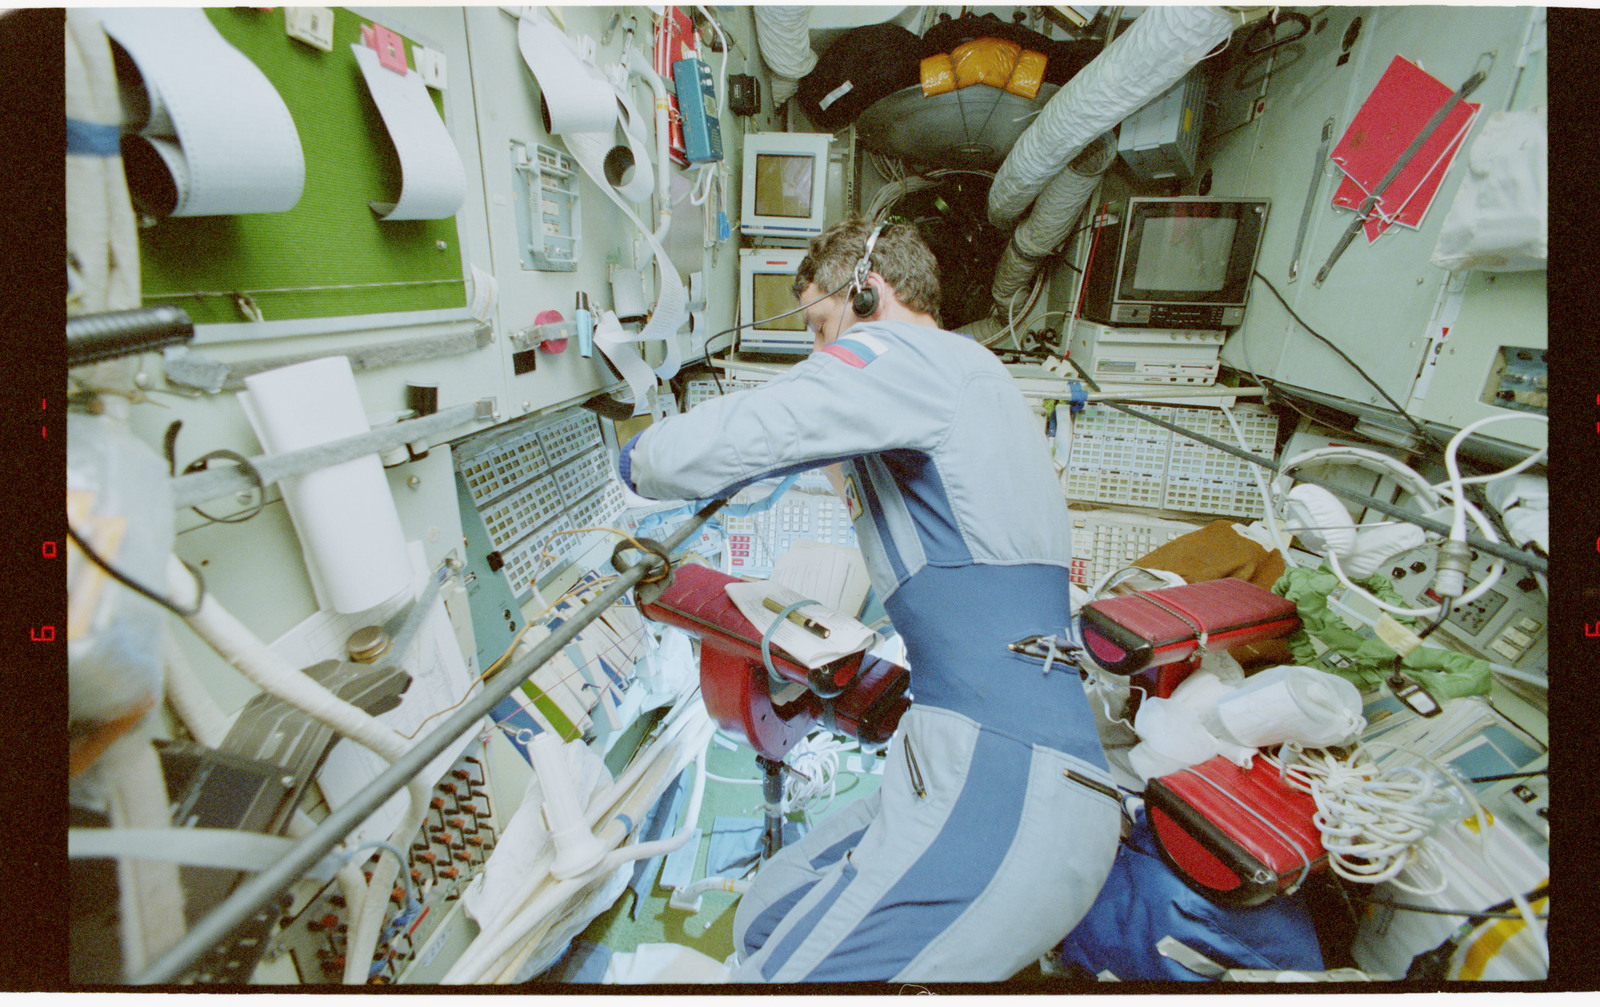 STS079-336-016 - STS-079 - STS-79 and Mir 22 crew activities in Mir space station